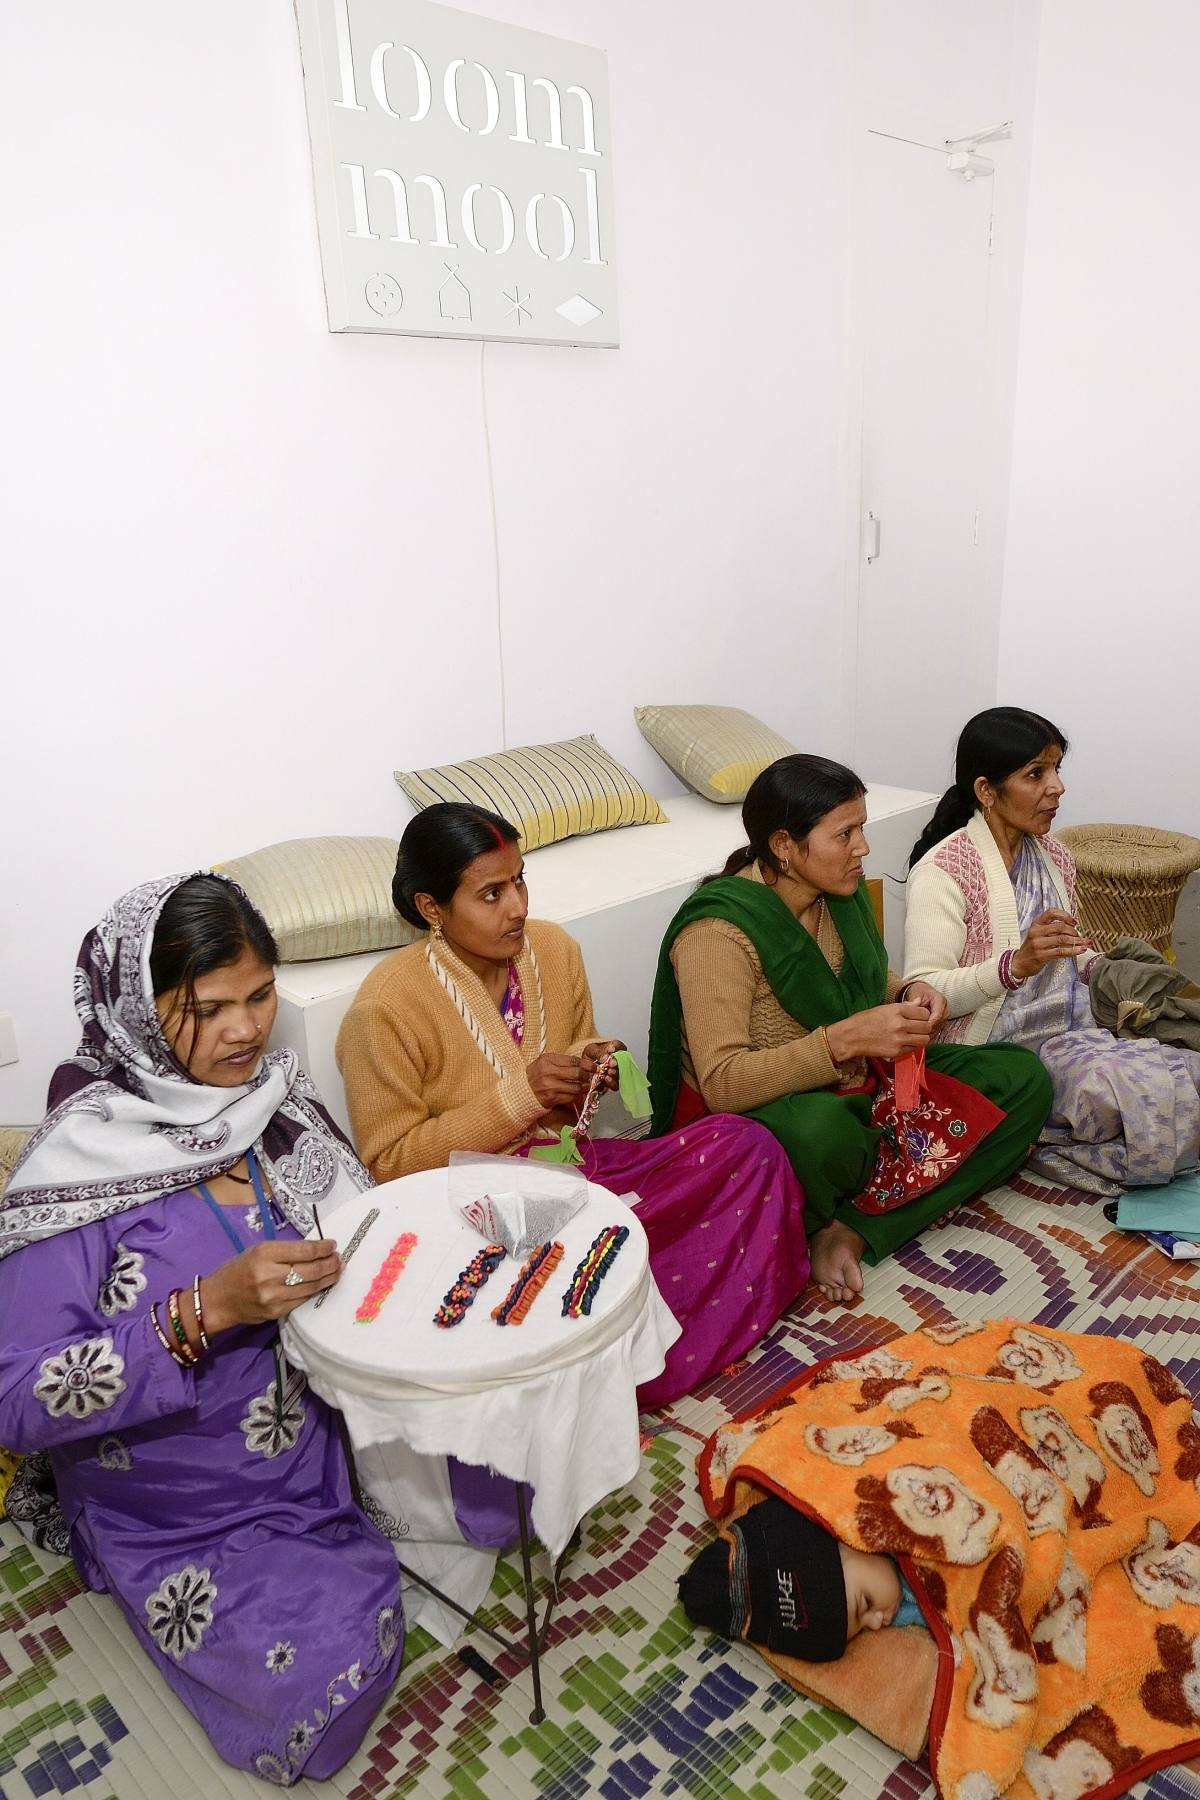 SEWA works with the silk artisans directly, eliminating the 'middle men', and helps them create designs that are contemporary while using traditional weaves.